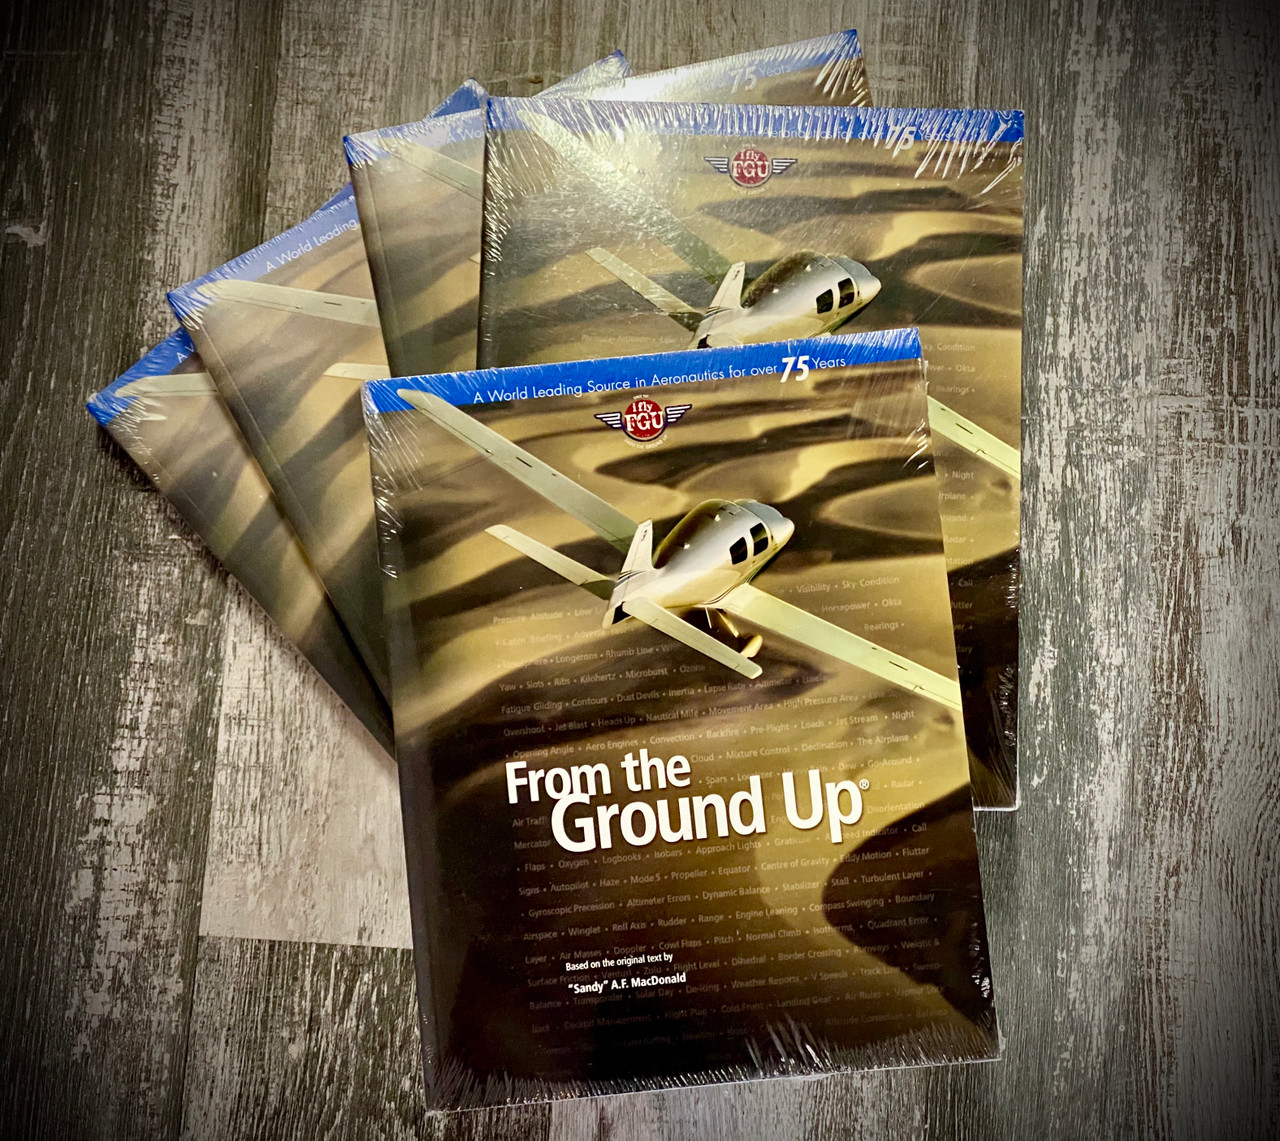 From The Ground Up from the ground up, 29th edition